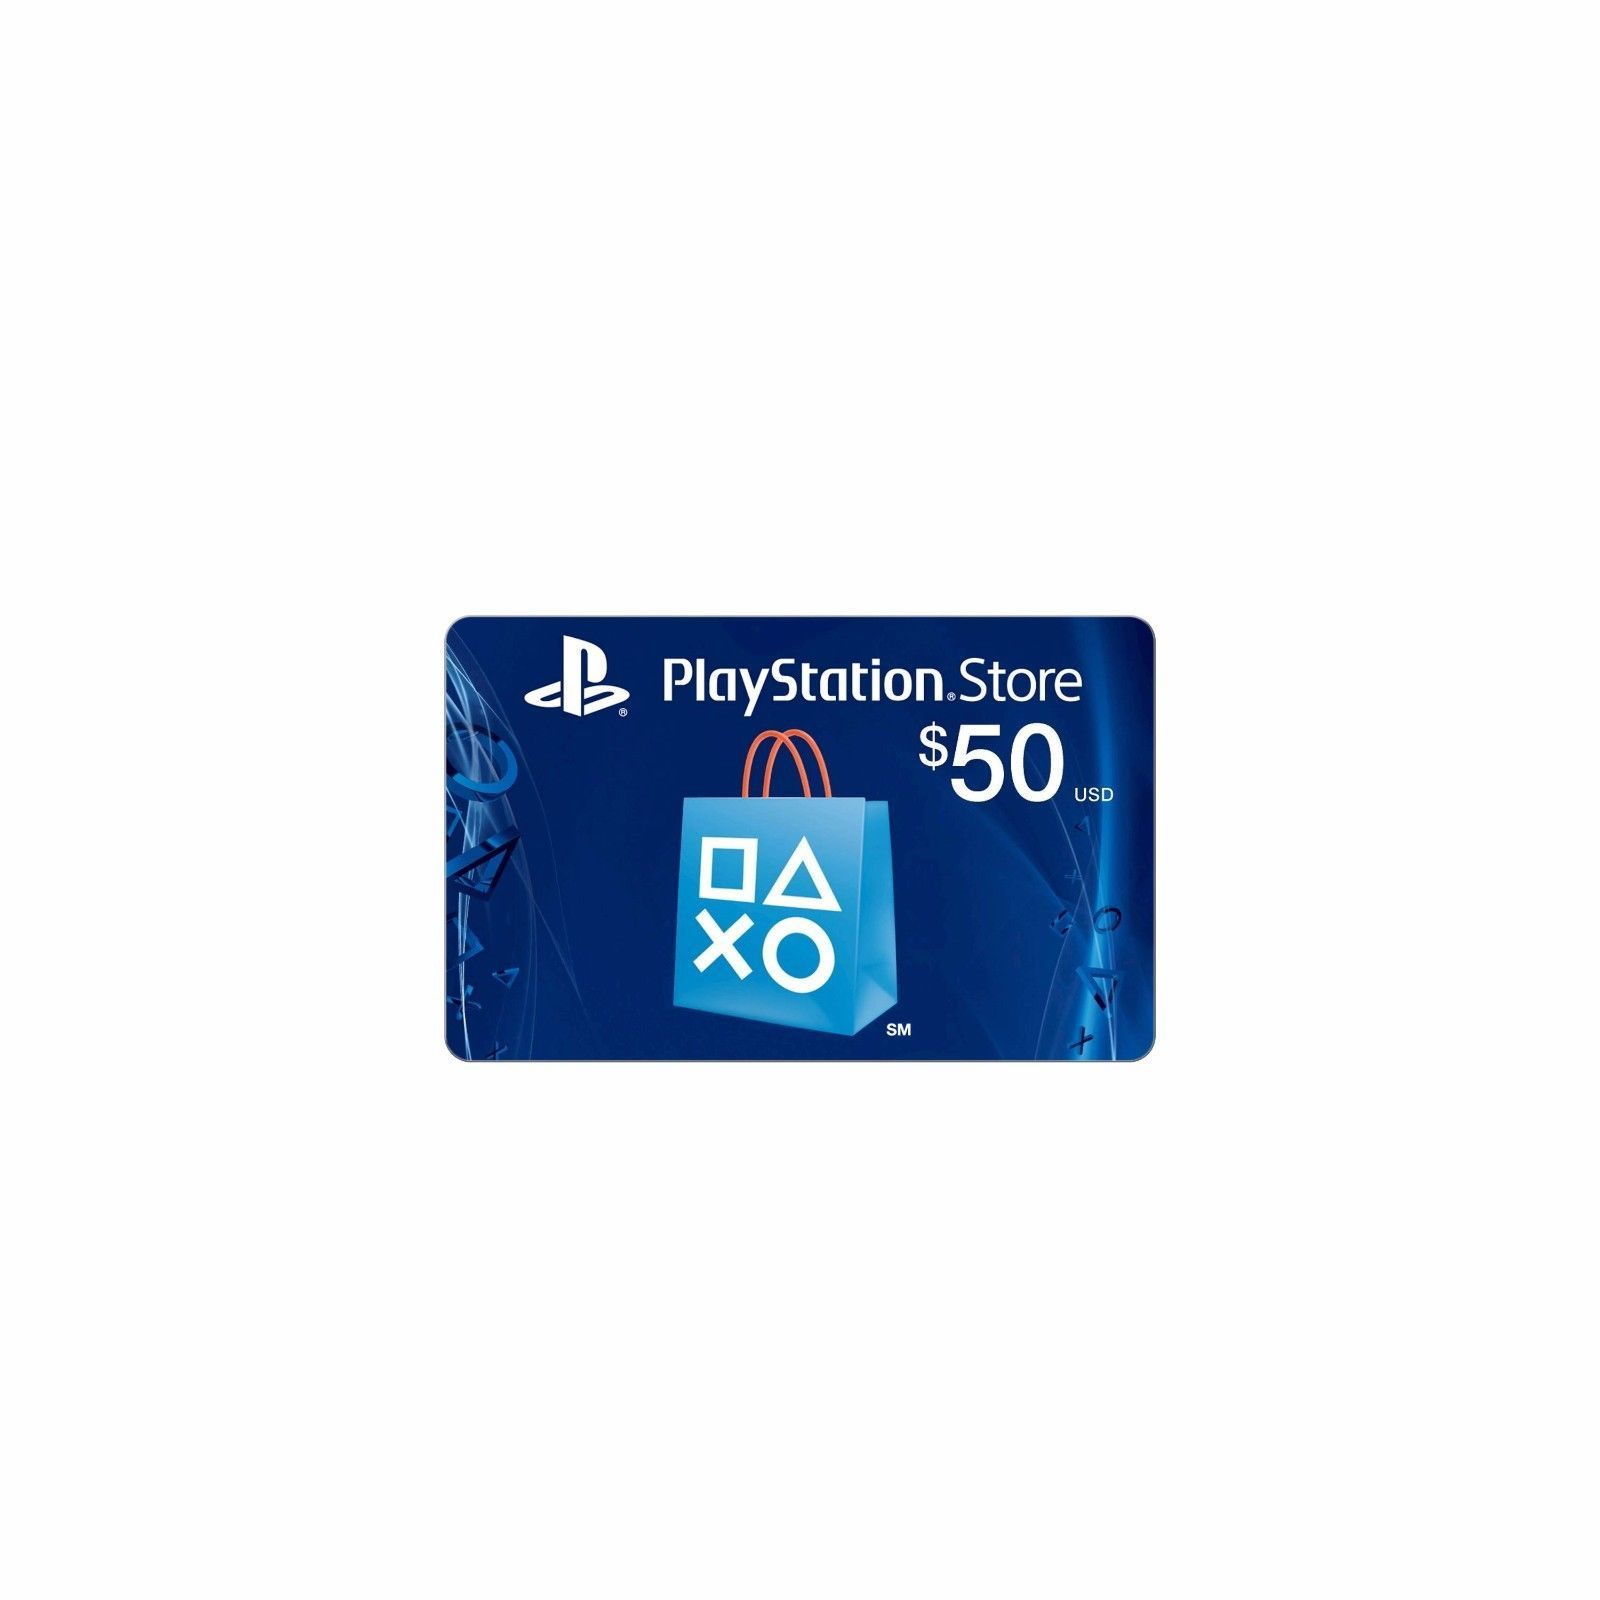 Playstation Store 50 Gift Card Http Searchpromocodesclub Psn Usd 3 Shopping Discounts Seeker Pinterest Top Gadgets And Bag